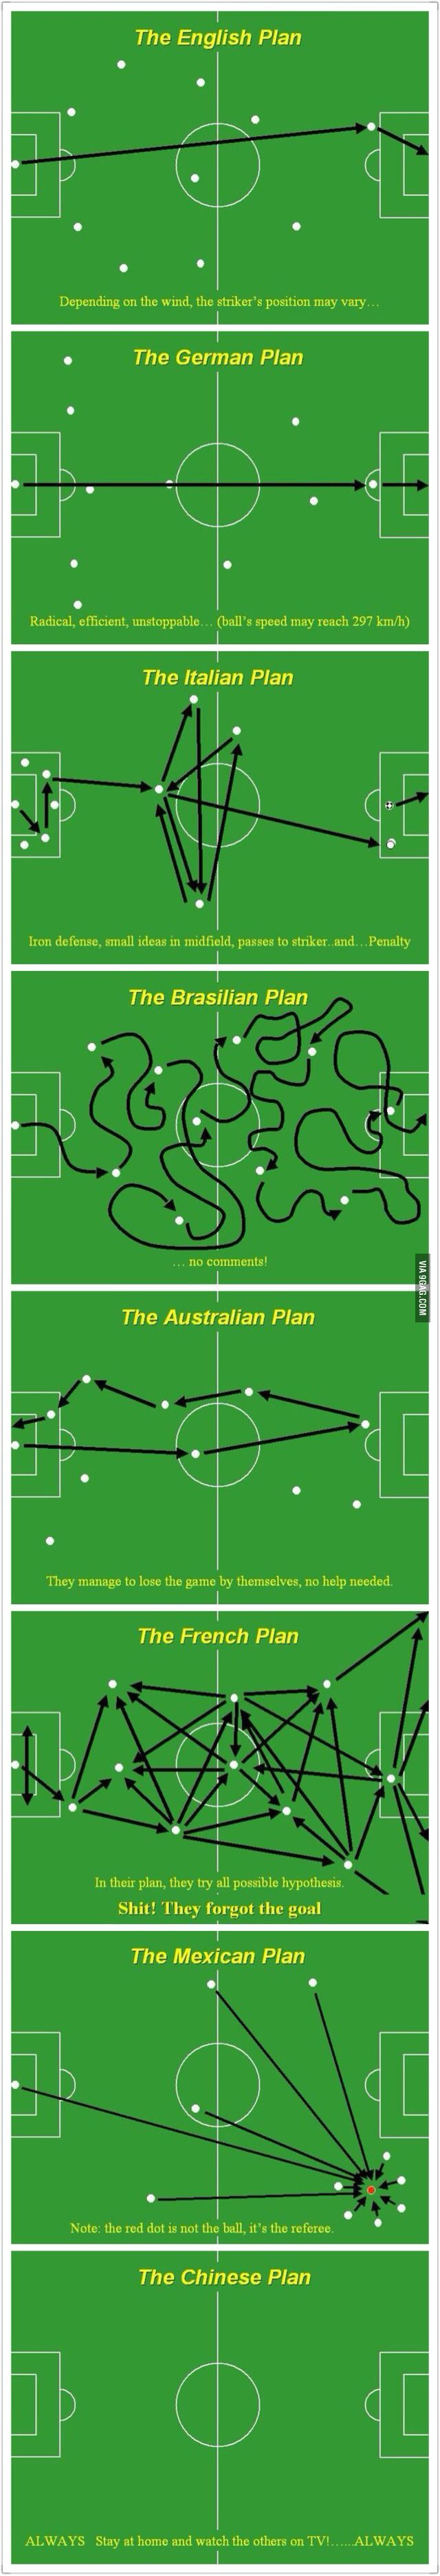 World Cup soccer strategies by country. Hahaa, made me laugh. 4:0 b$#**^ !!